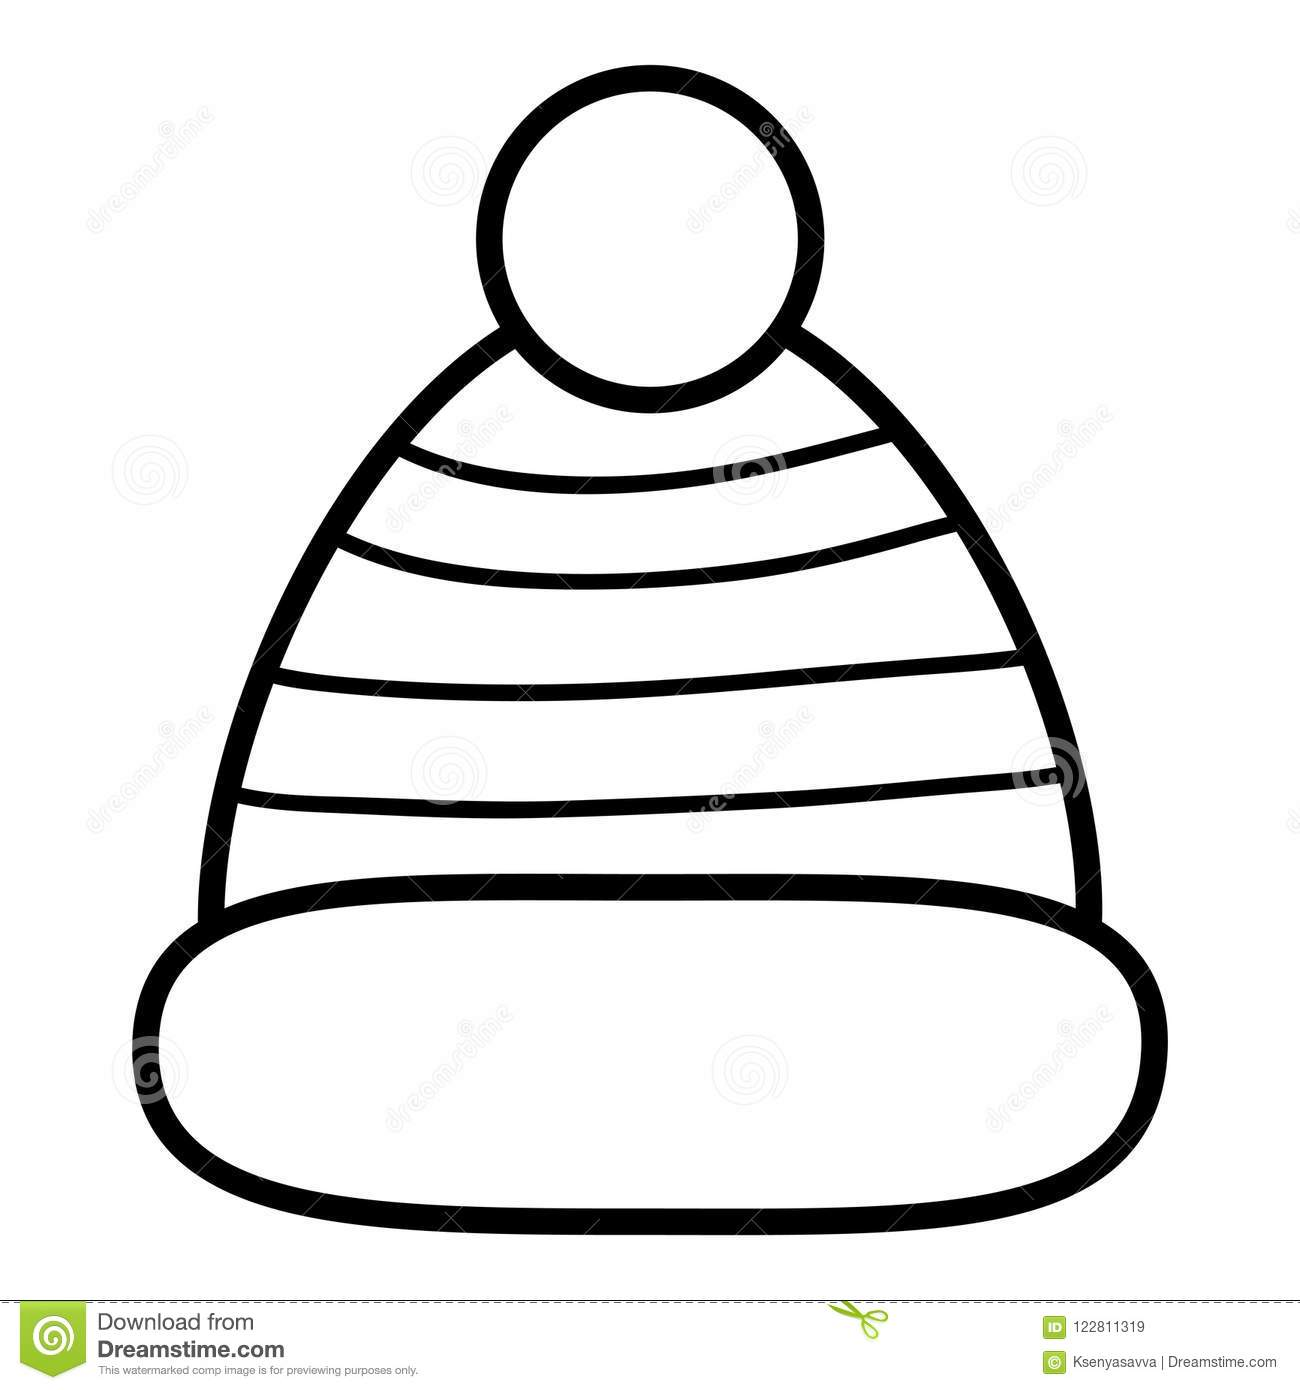 Coloring book, Knitted hat stock vector. Illustration of